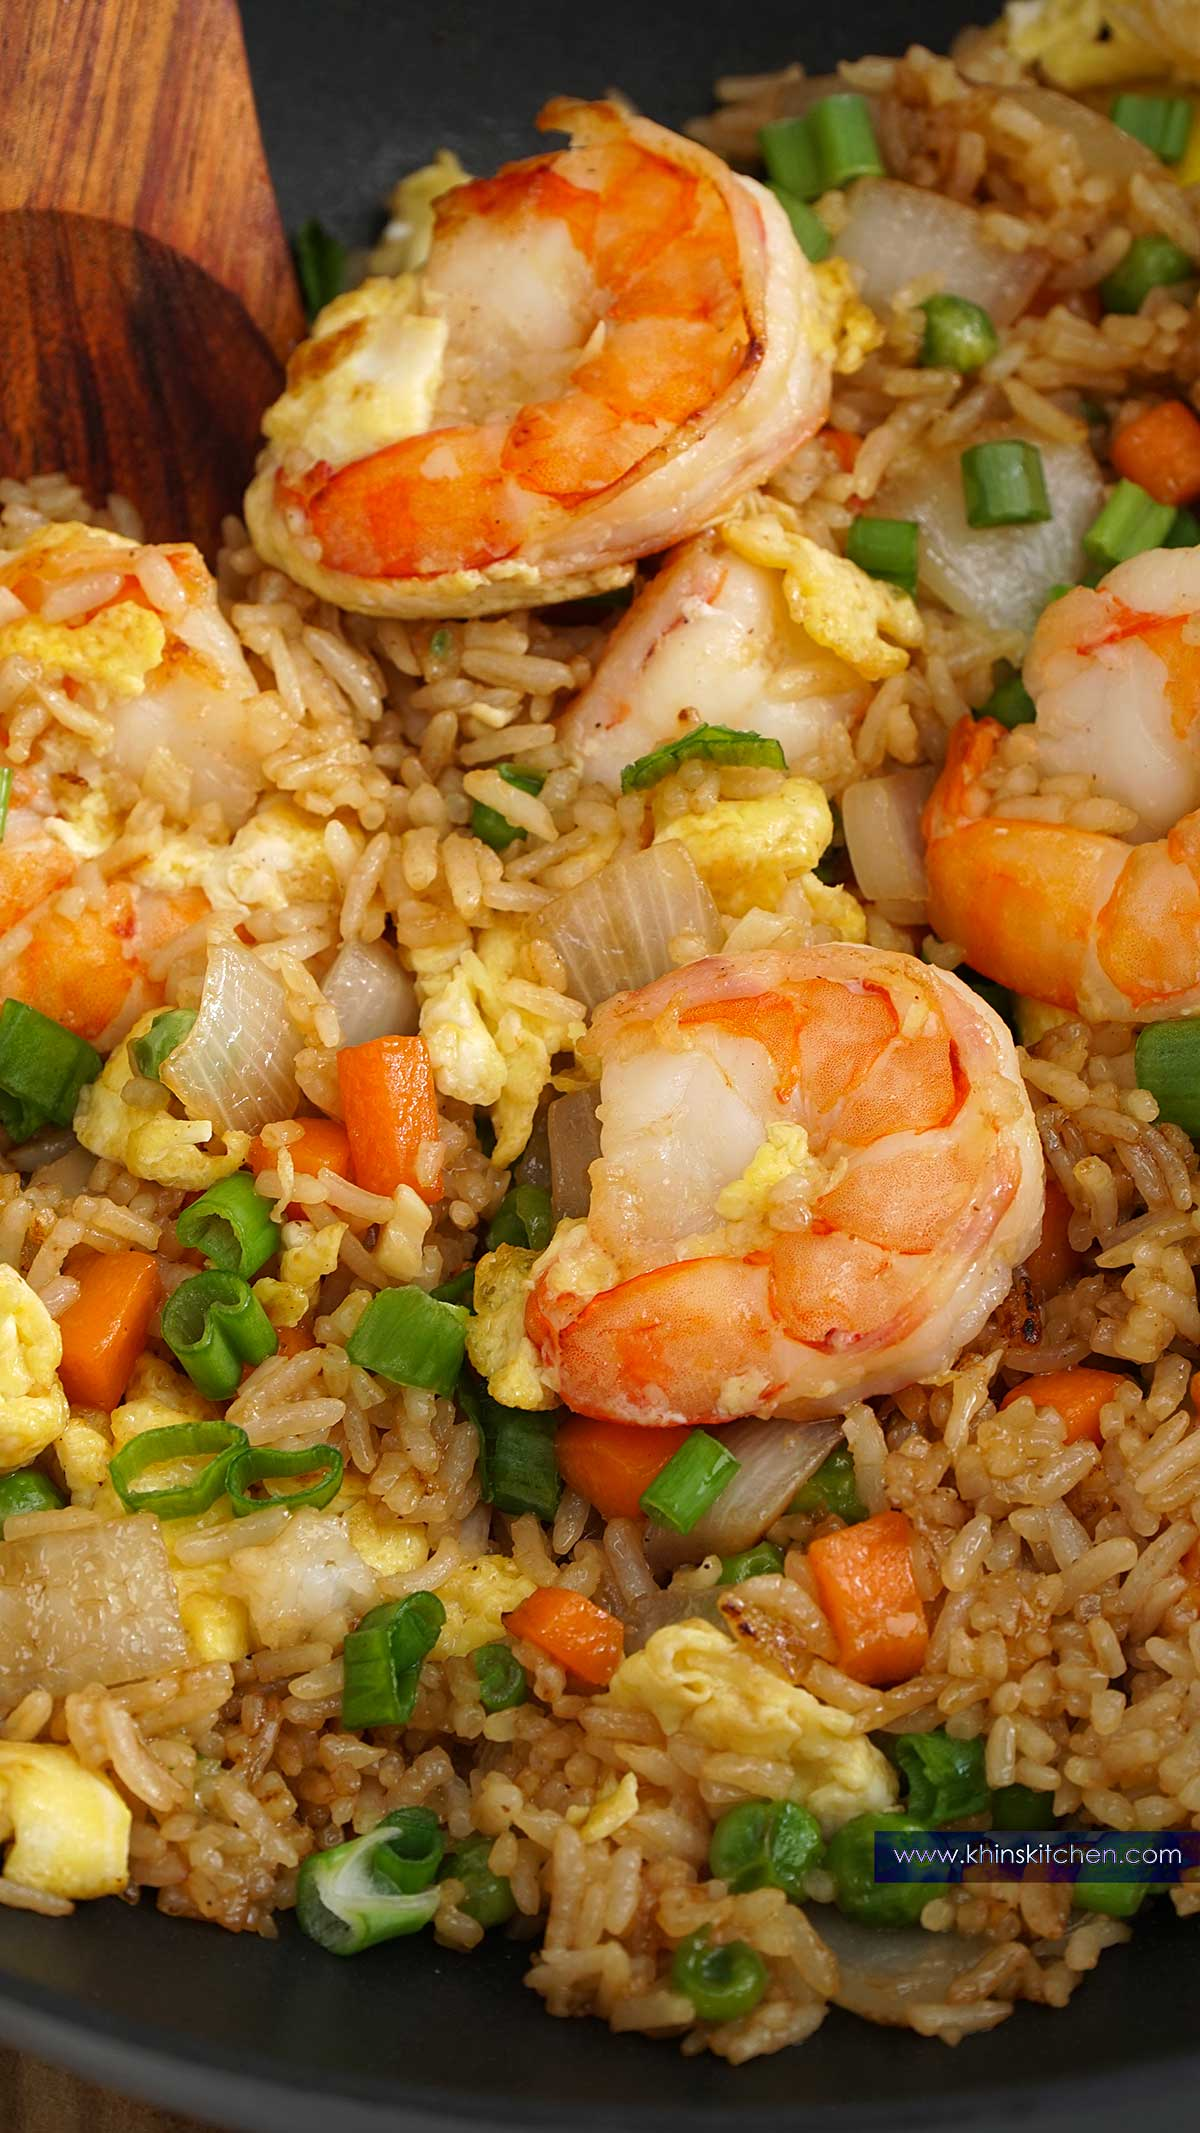 A close up view of rice, shrimp in the wok with wooden spatula.